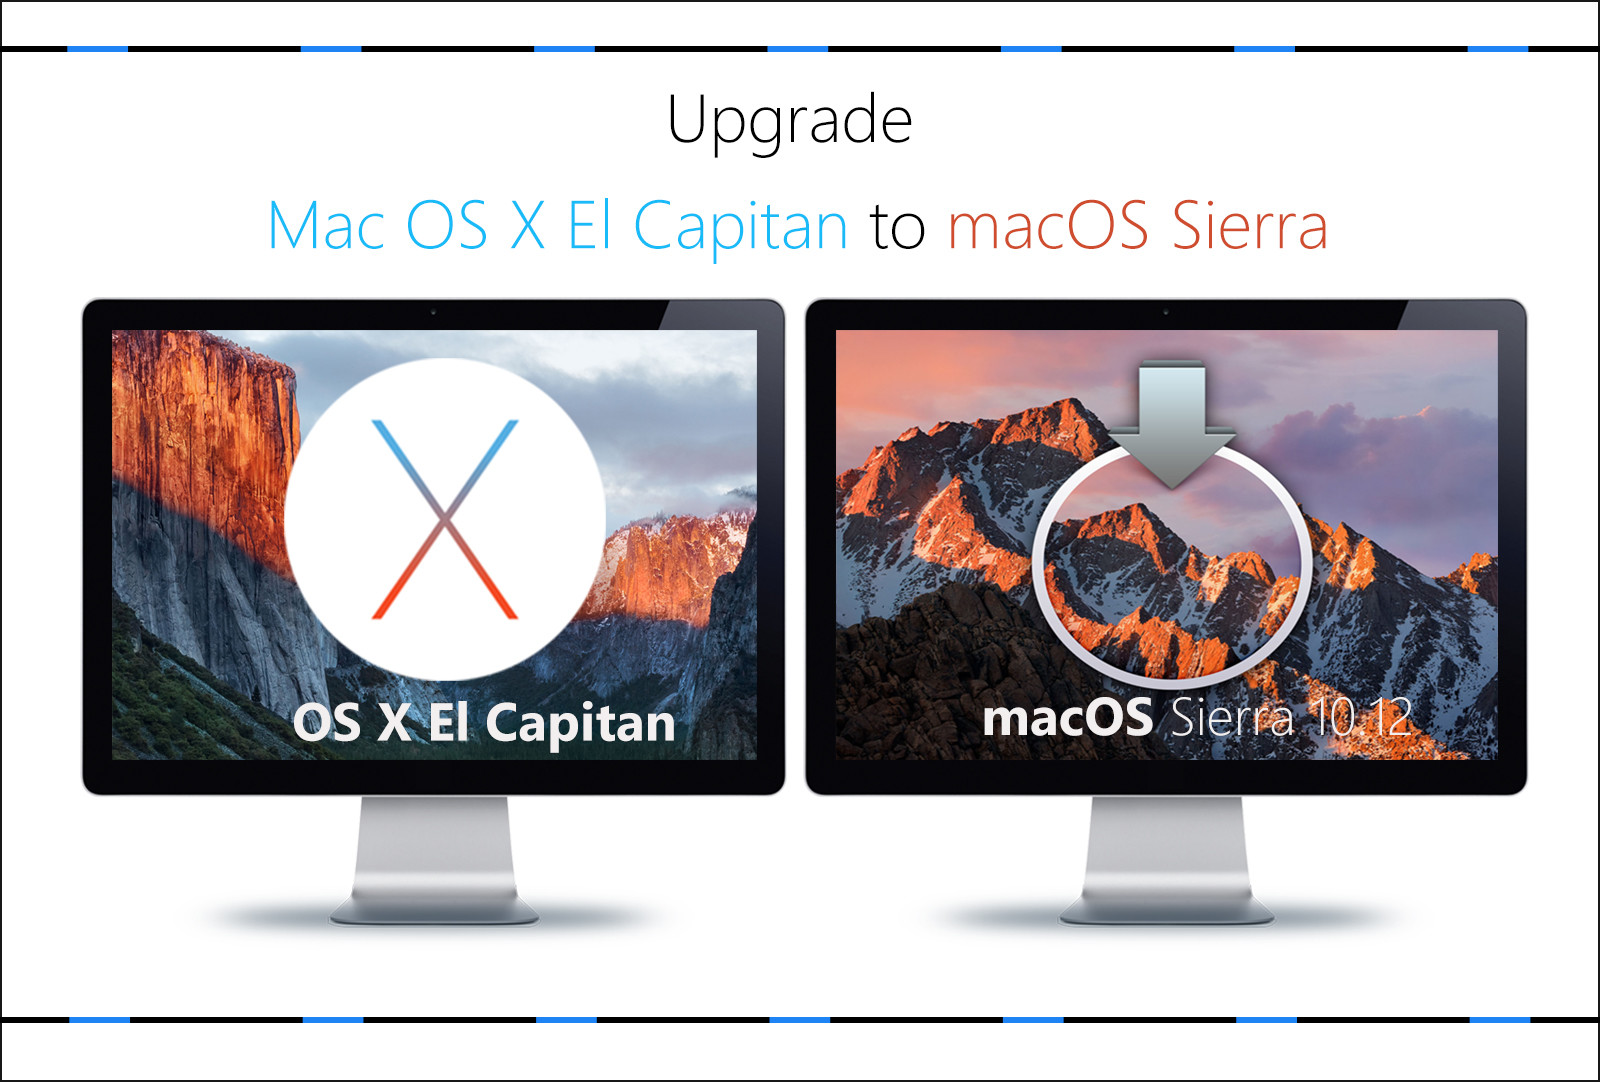 How to Upgrade Mac OS X El Capitan to macOS Sierra 10.12?